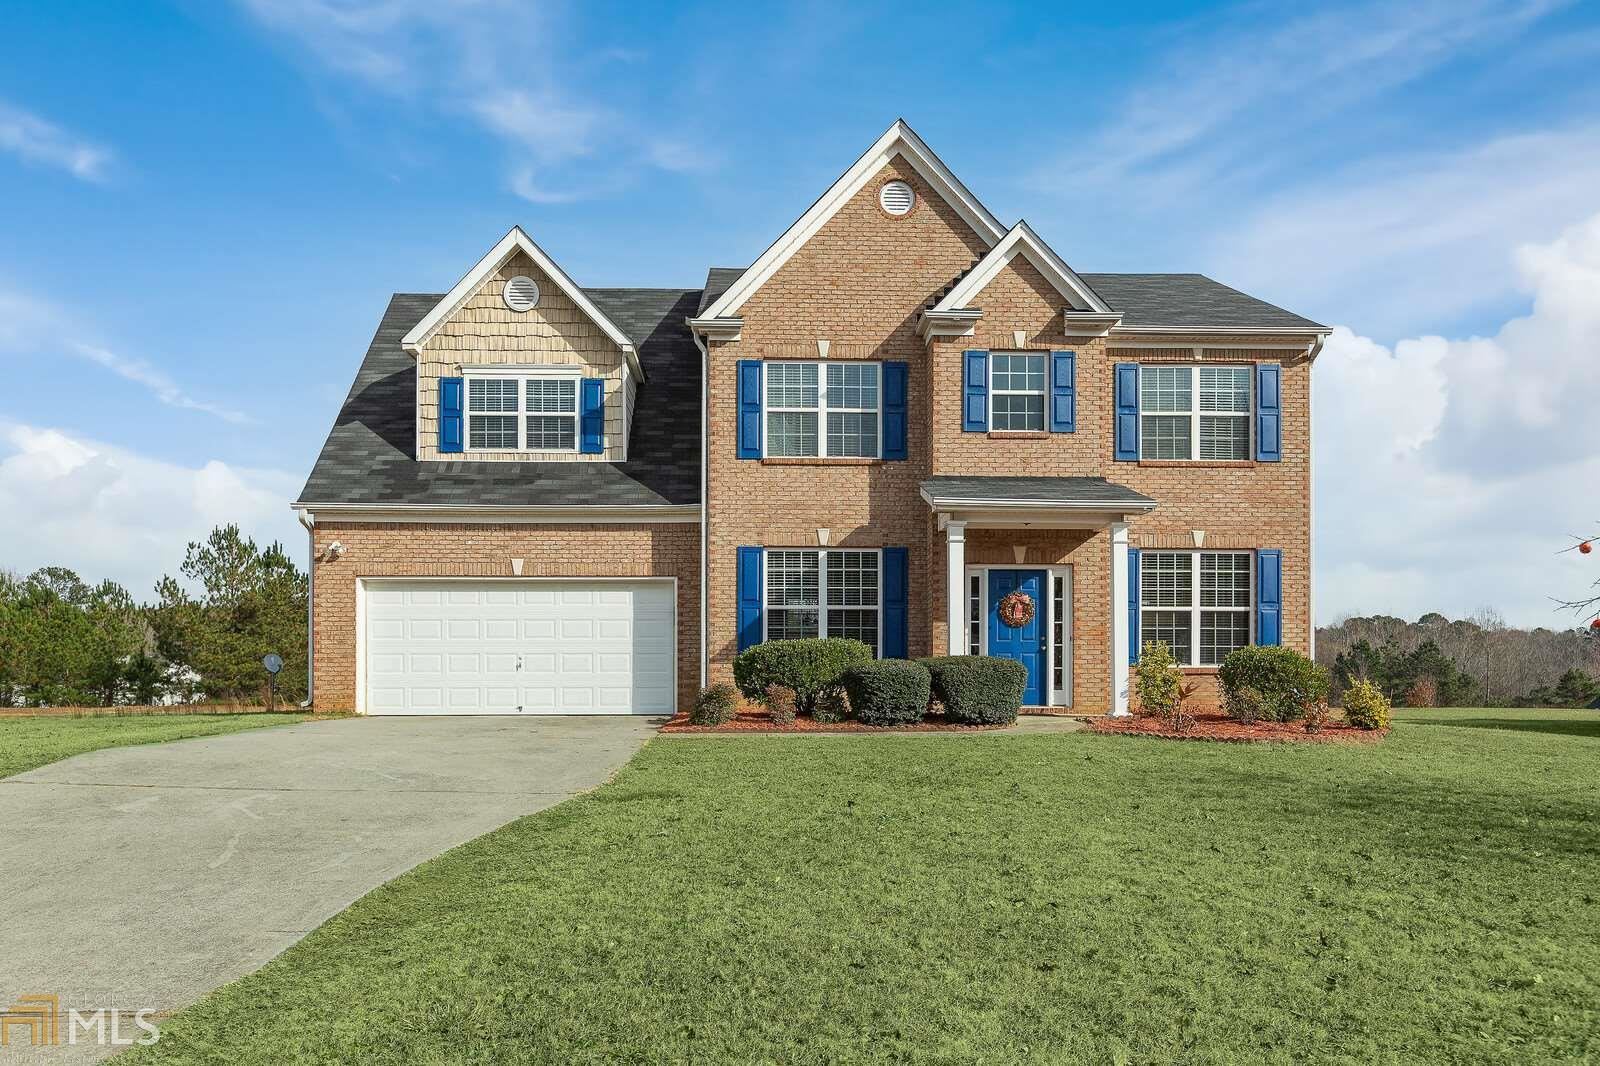 1027 Fellowship, Fairburn, GA 30213 - #: 8901701